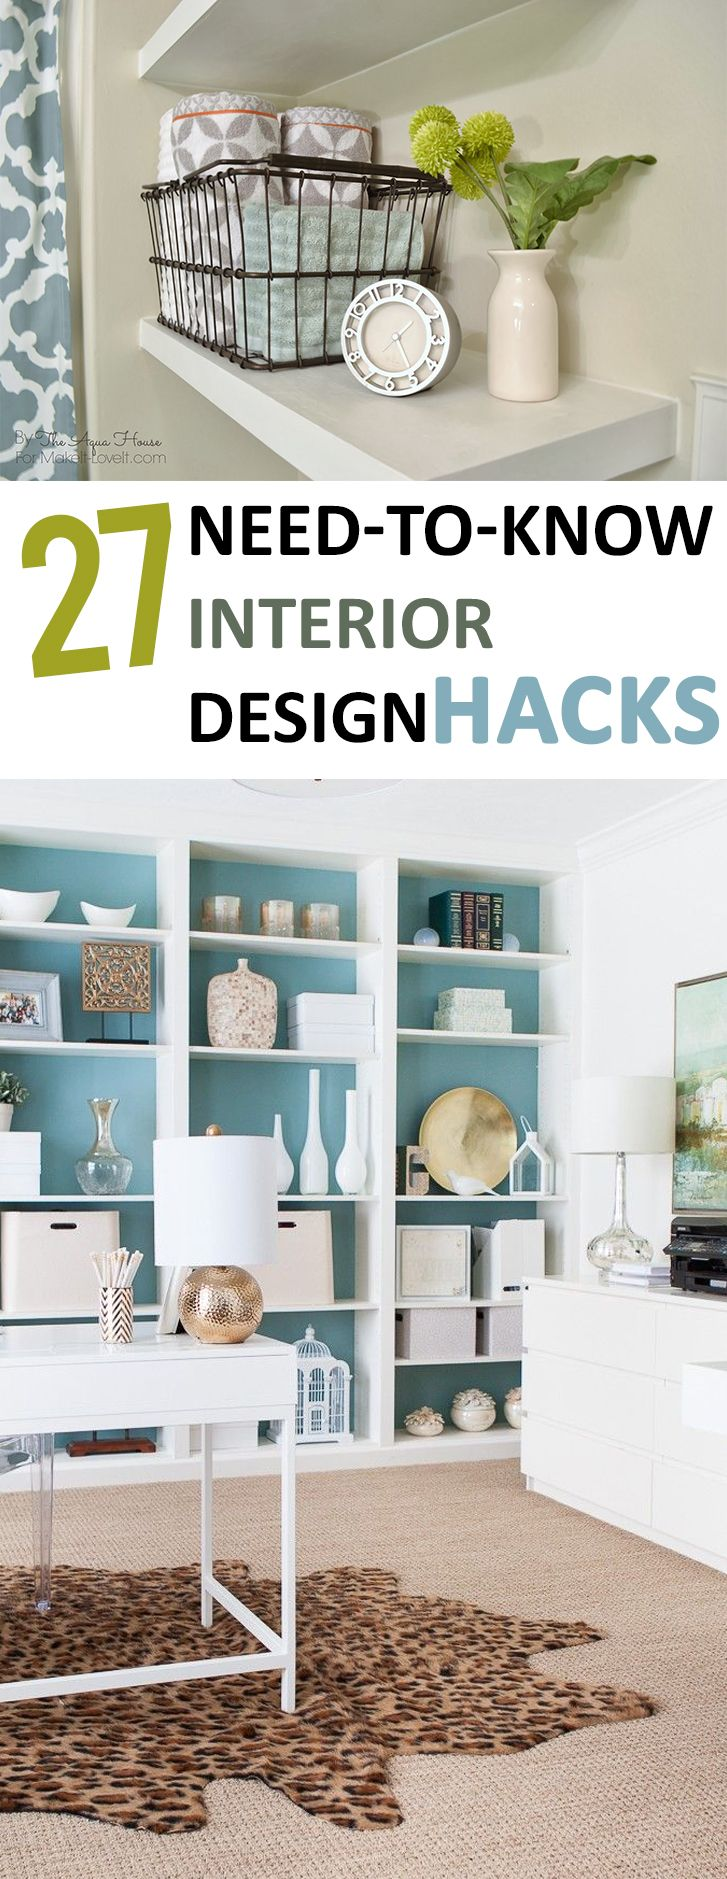 Interior design tips and tricks